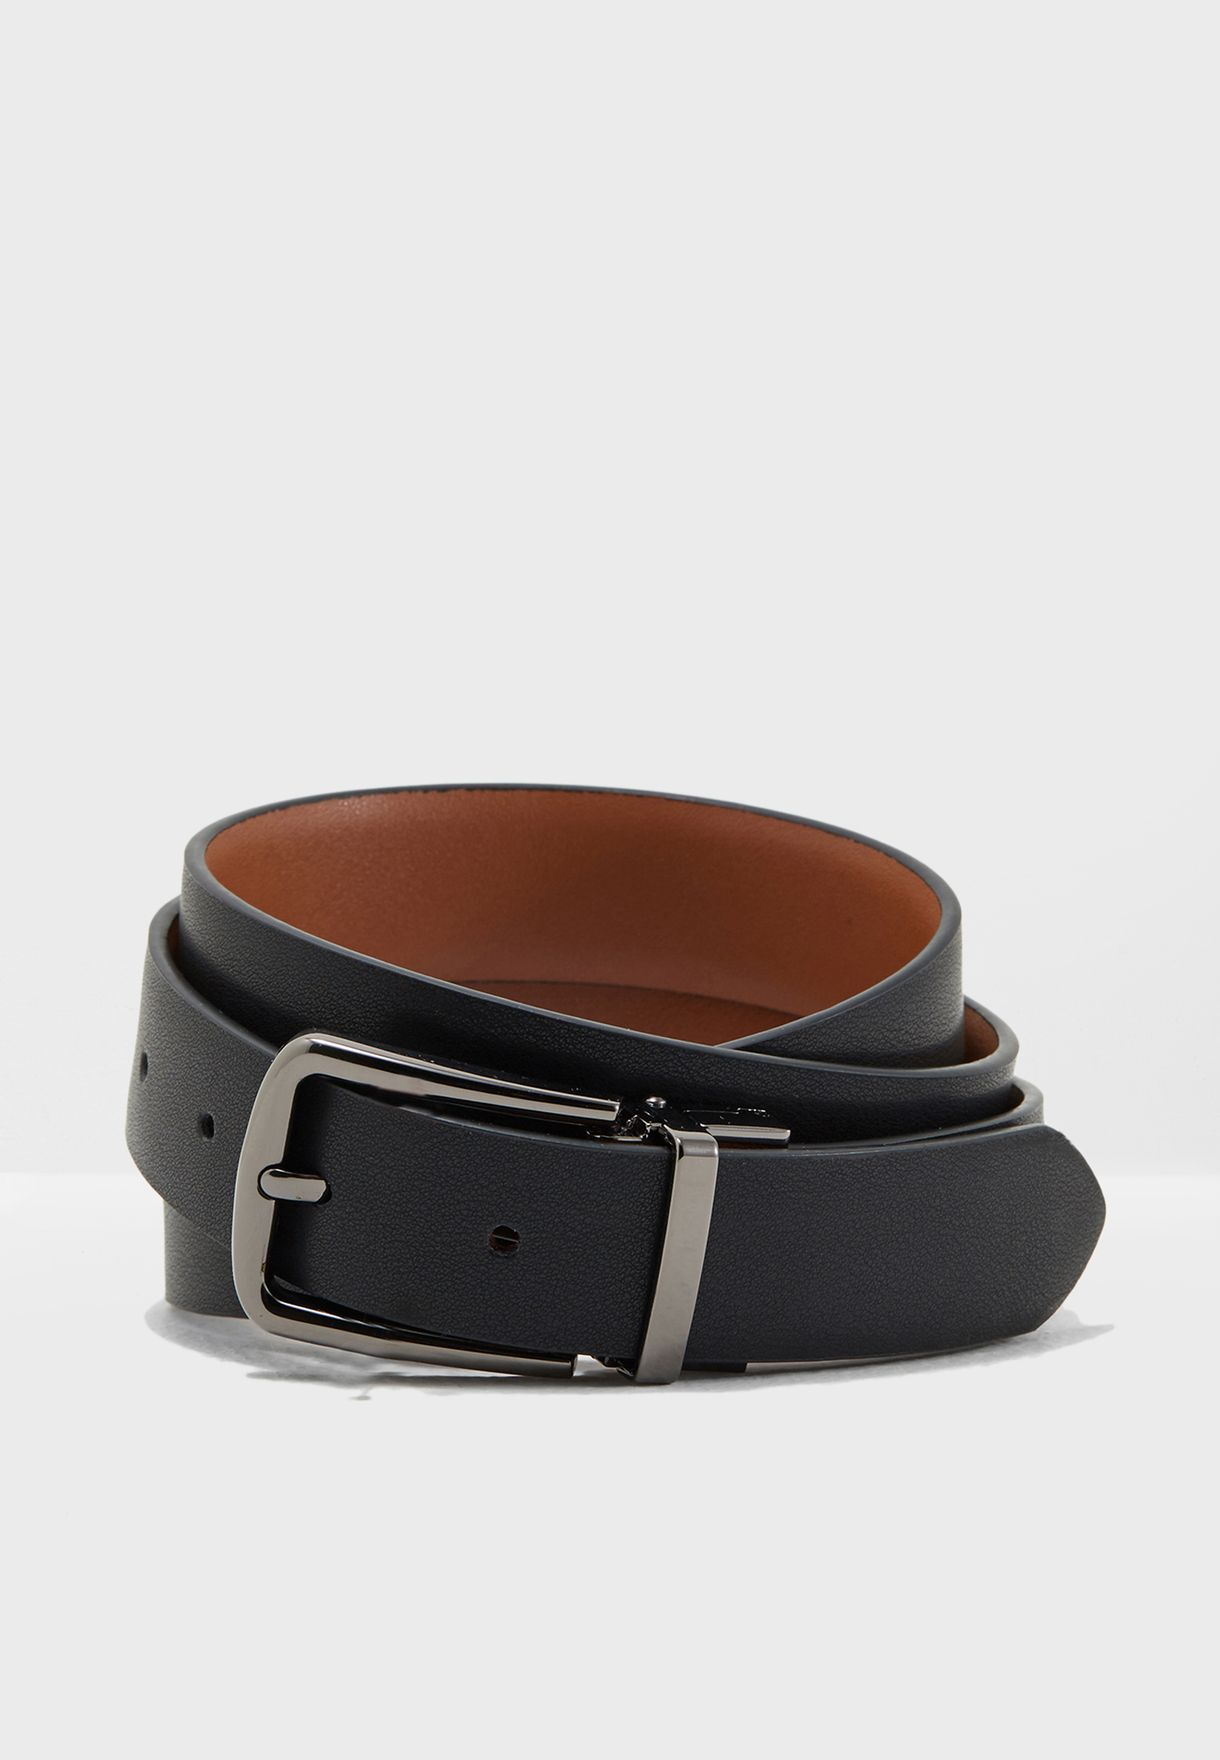 c02aa7609ae6 Shop smith   canova black Reversible Belt P-4 for Men in UAE ...